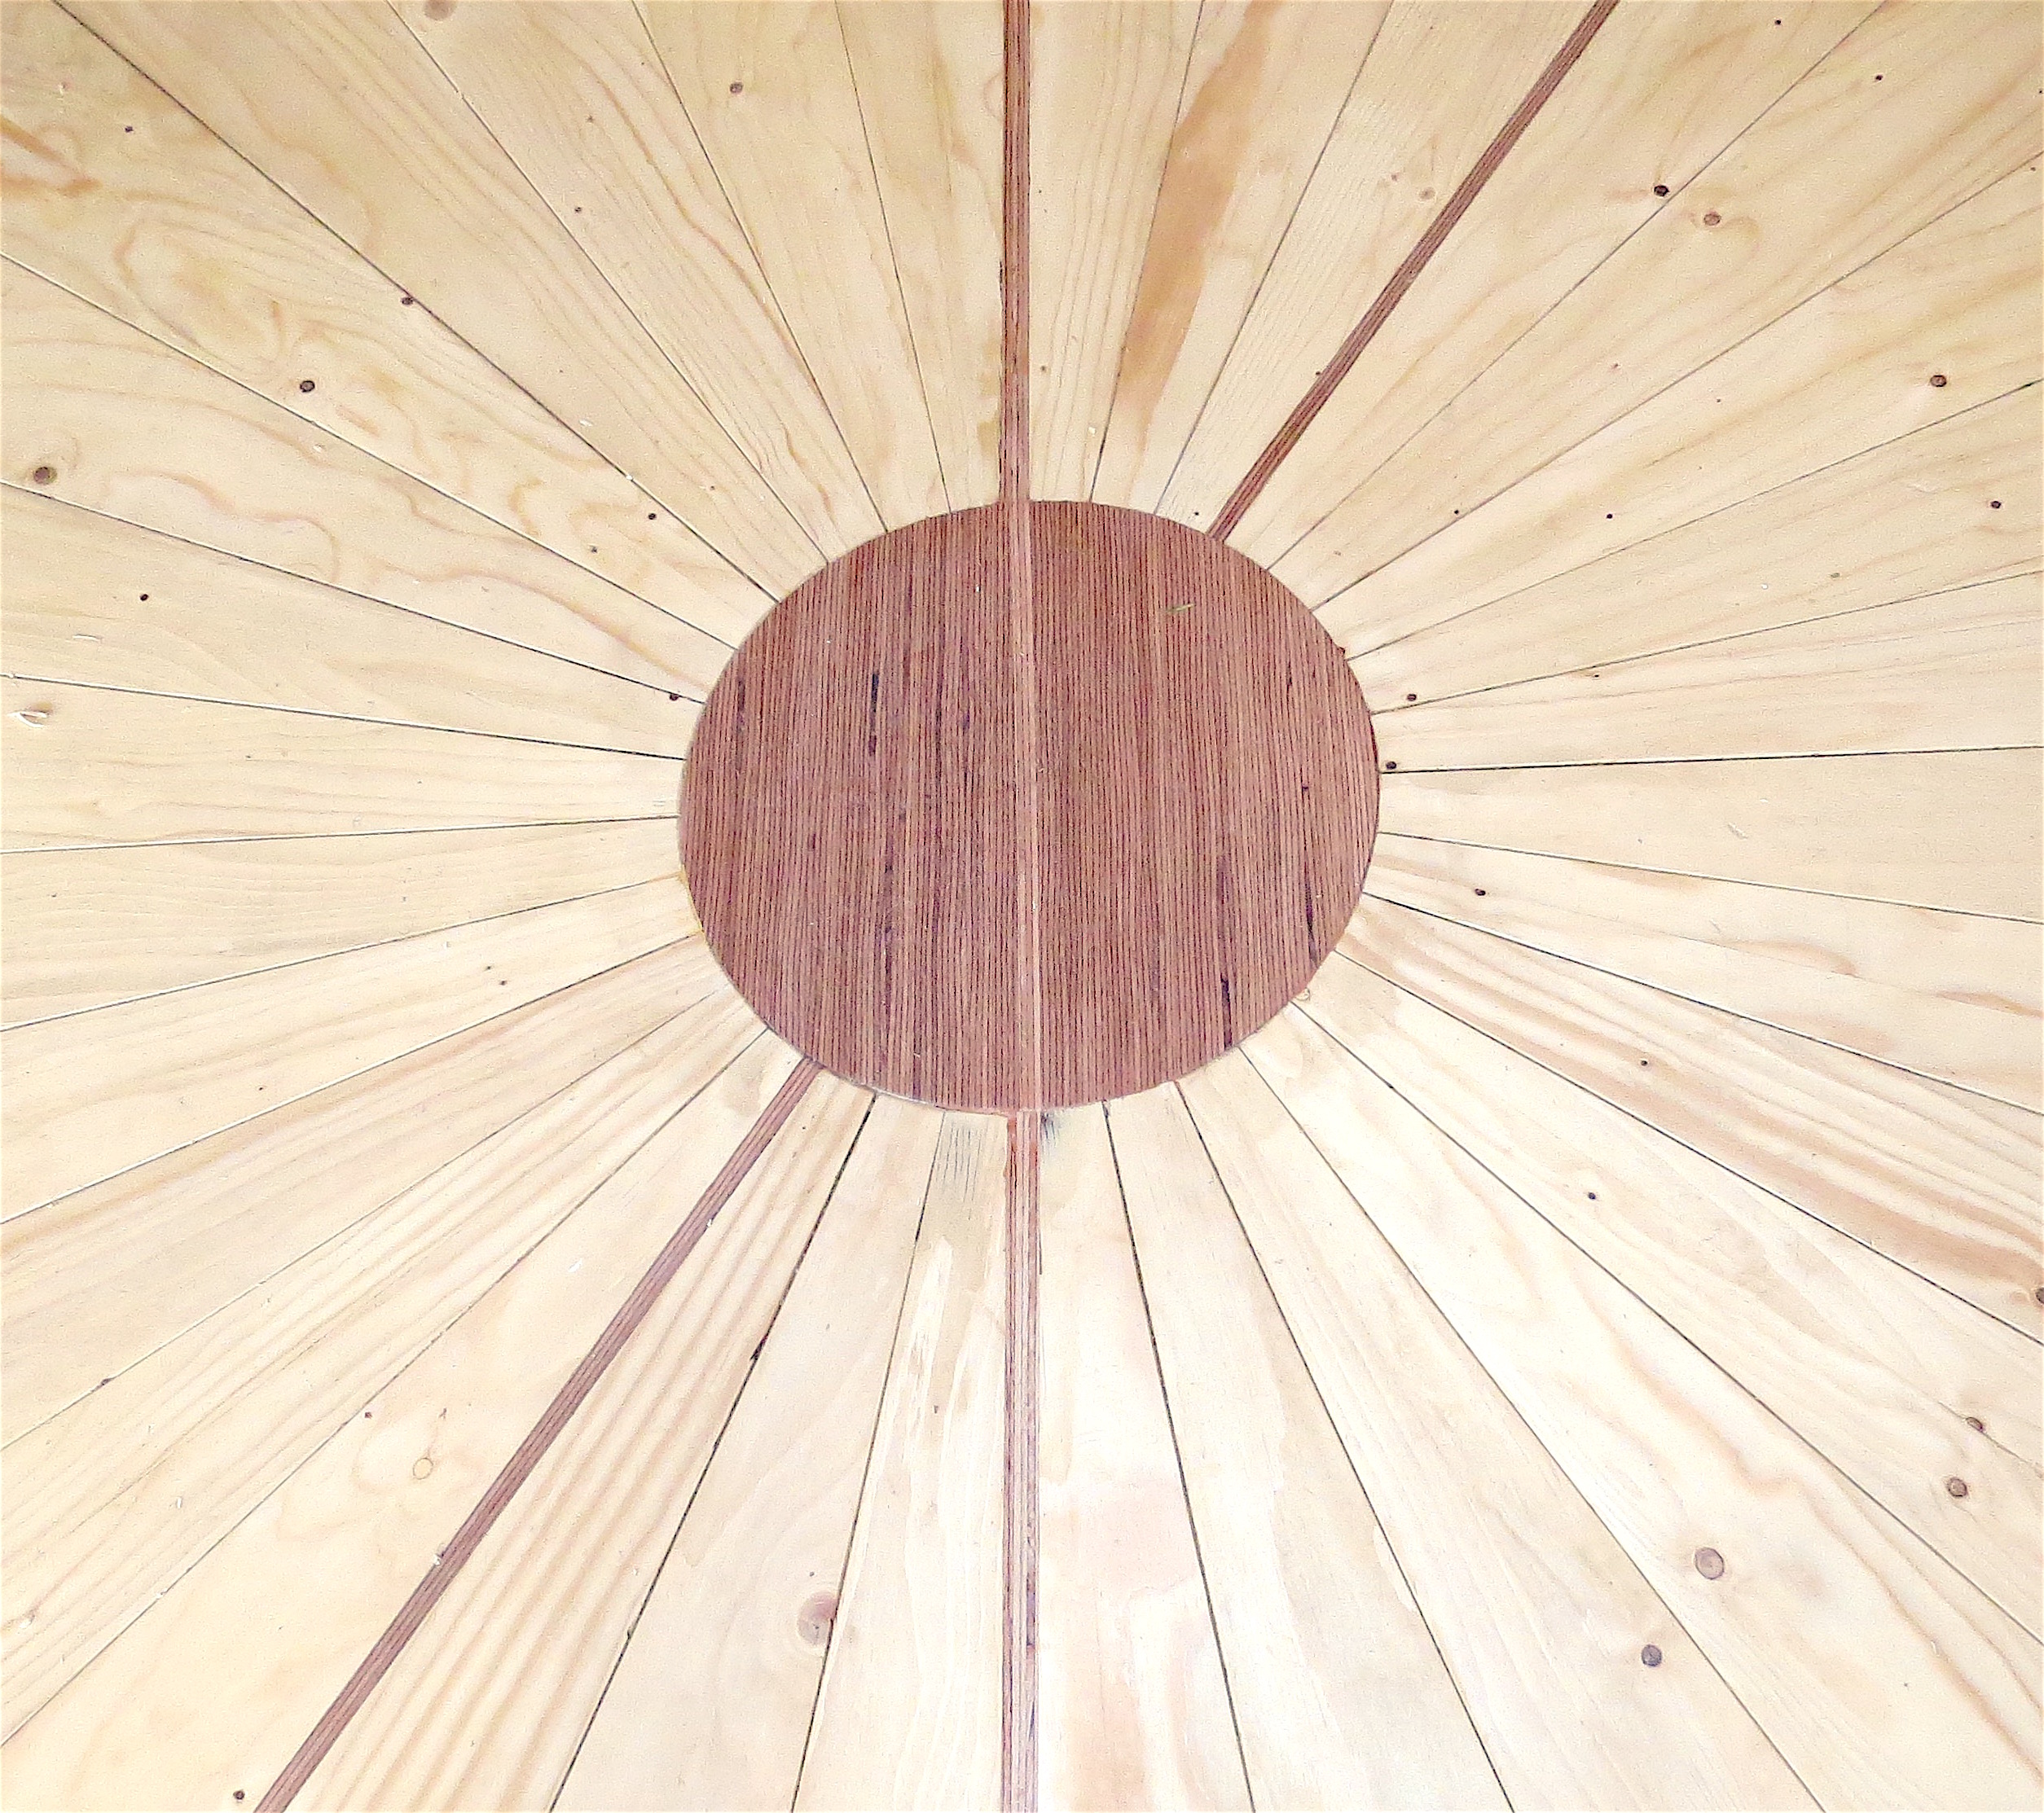 Echo Yurt Floor detail